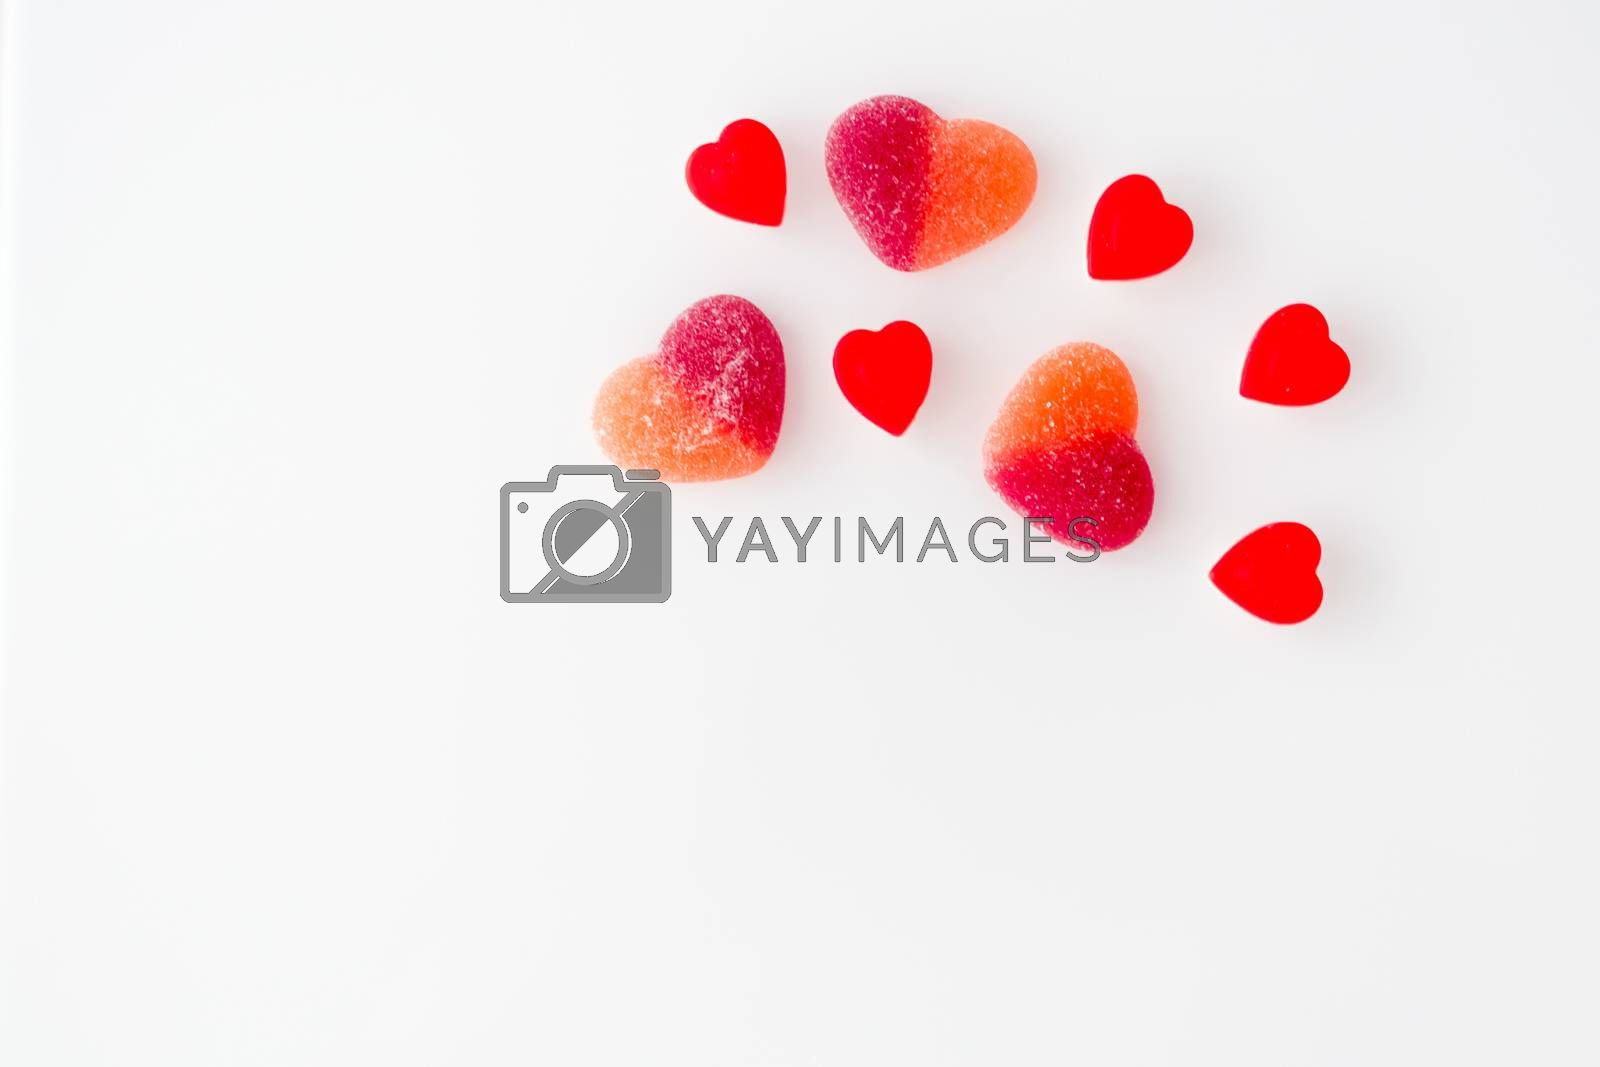 candy from marmalade in the form of red hearts